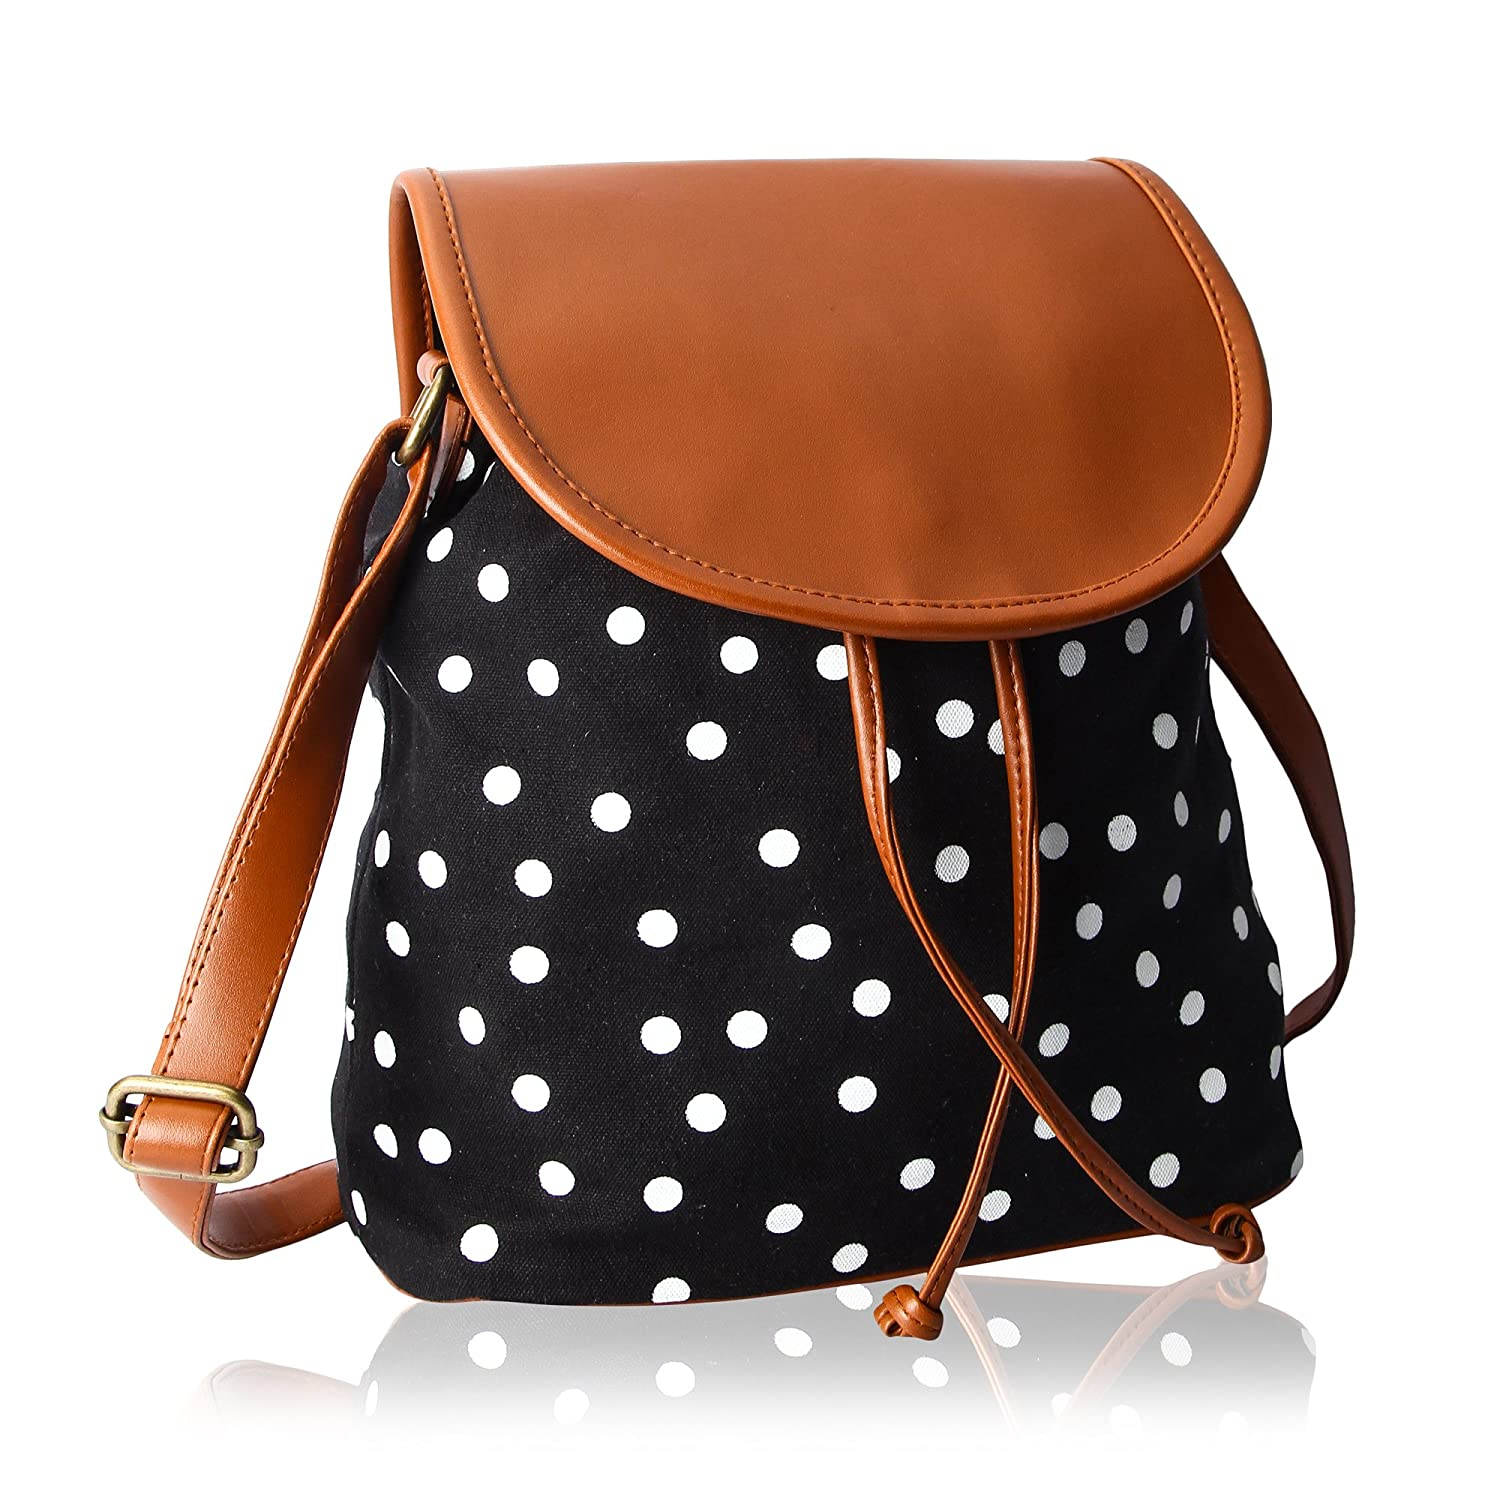 Kleio Polka Dots Canvas Slingbag For Girls / Women